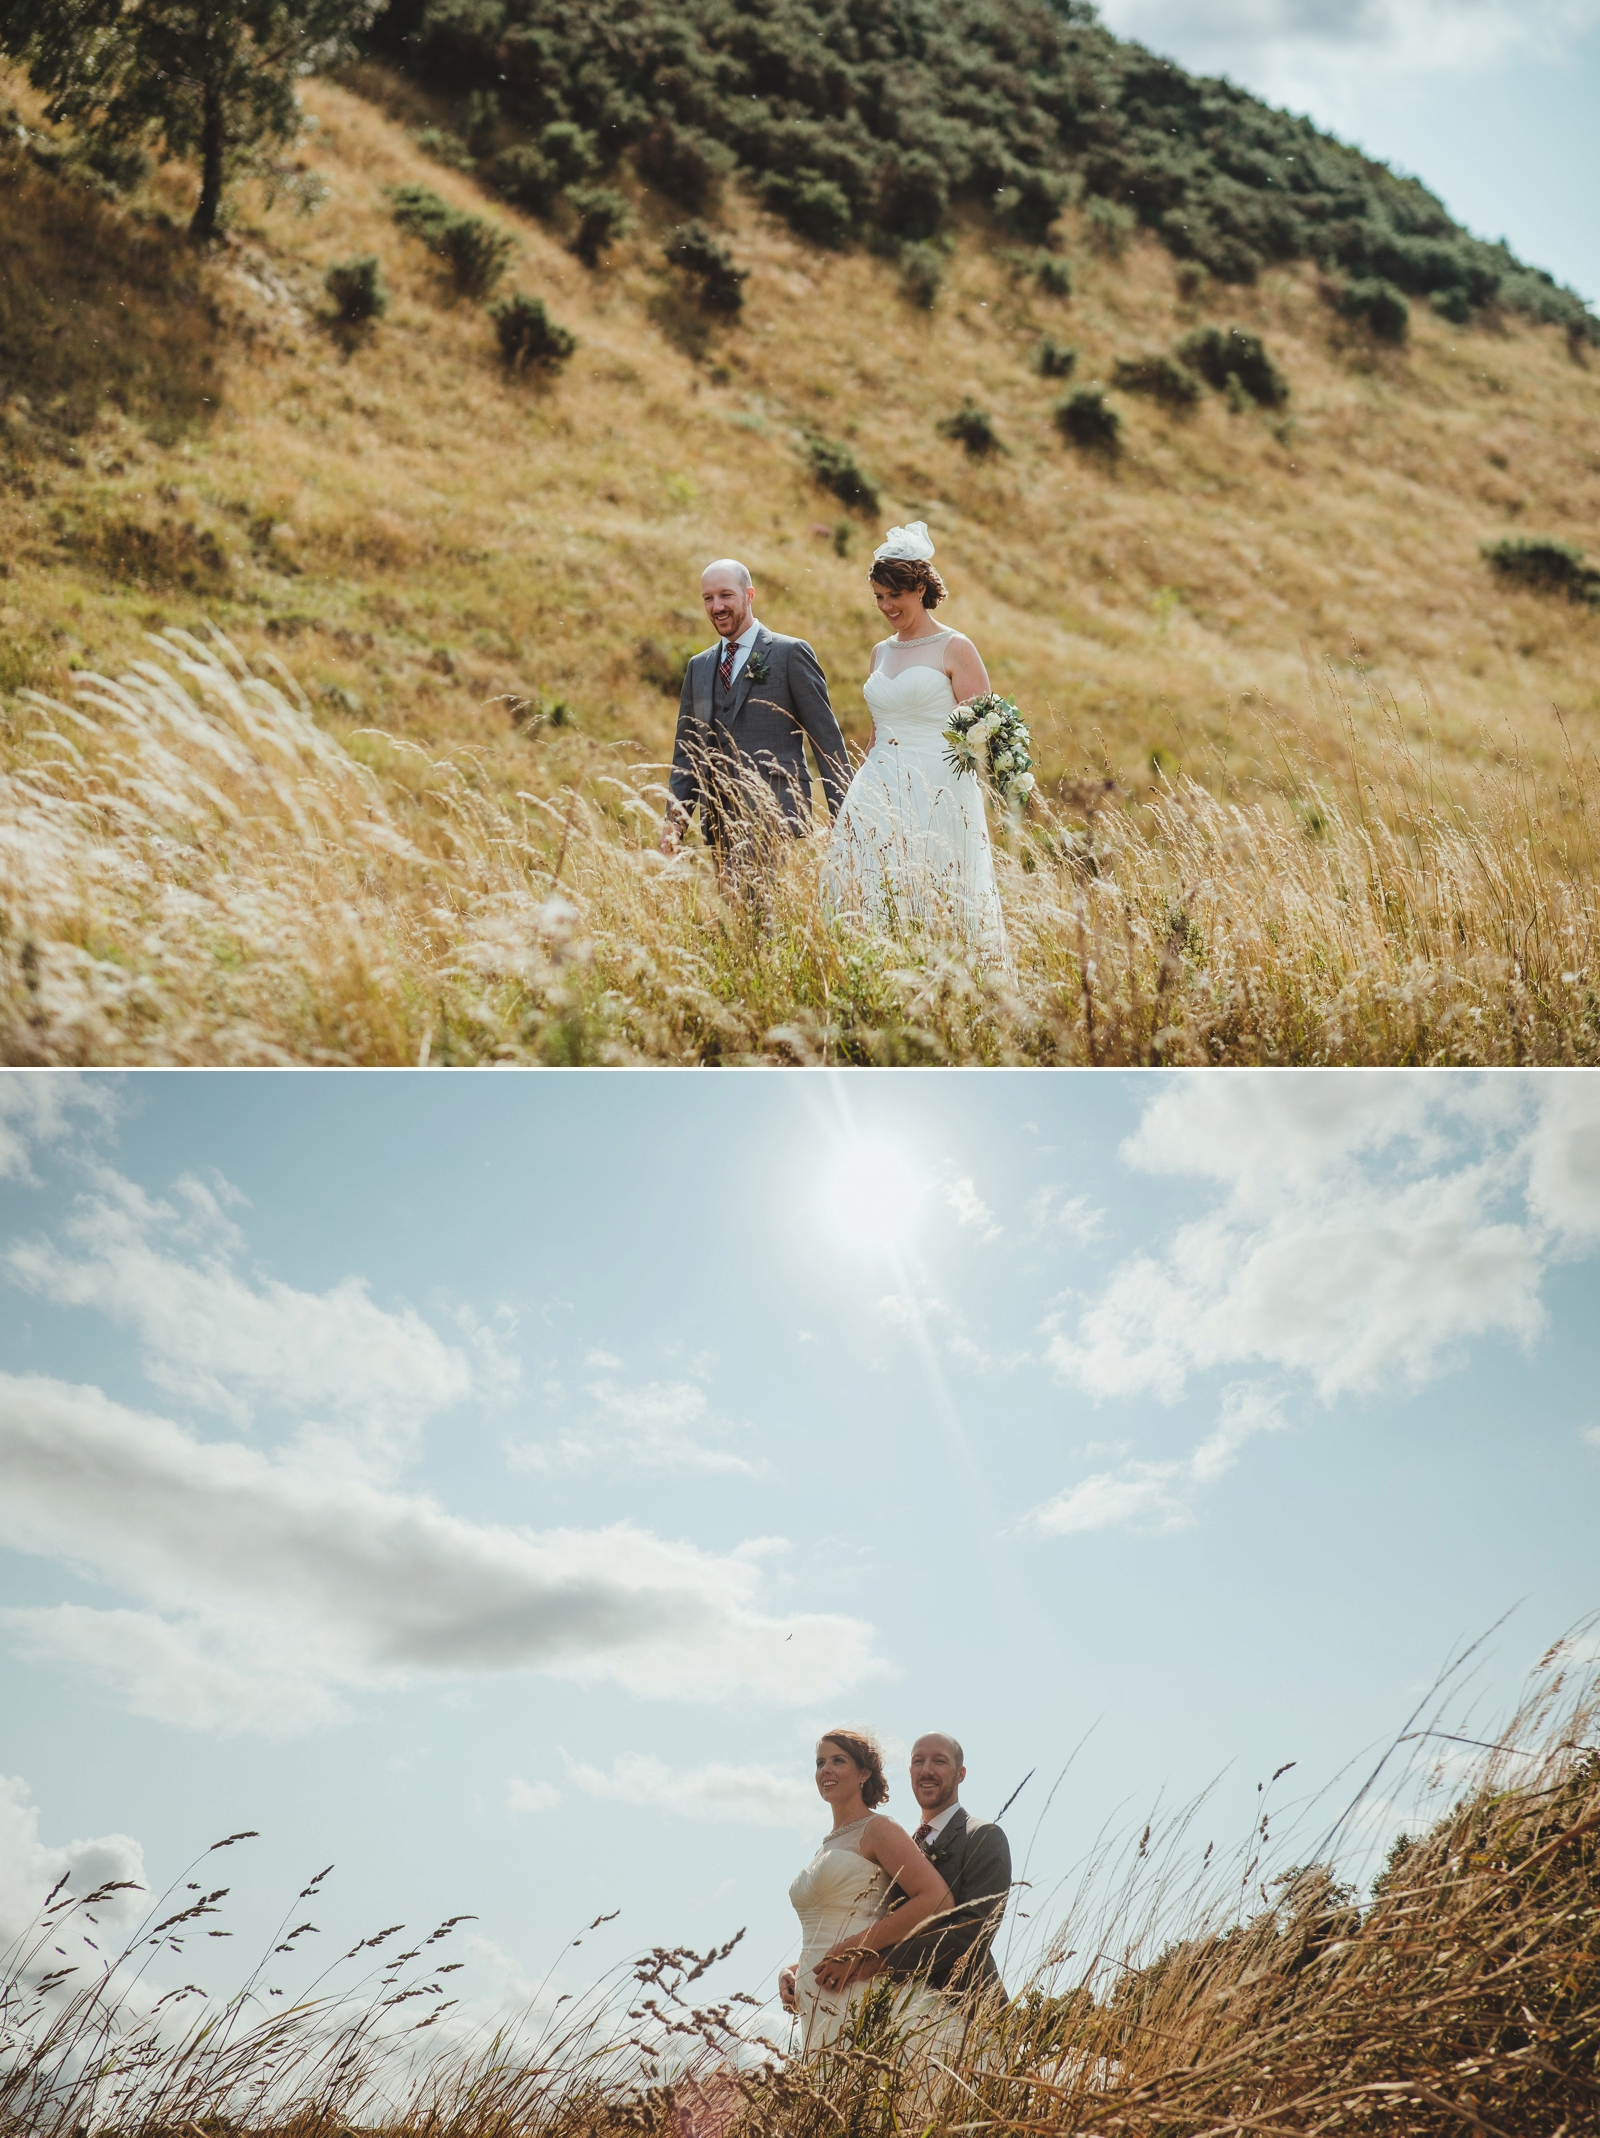 Angela___Andy_s_Edinburgh_elopement_by_Barry_Forshaw_0250.jpg